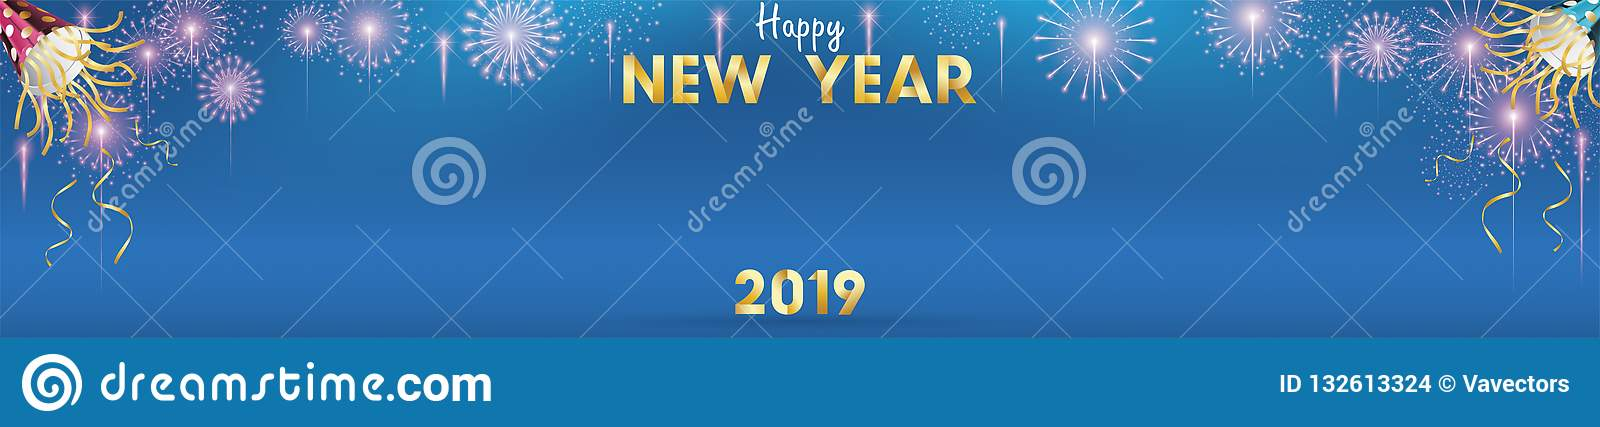 2019 happy new year background for seasonal flyers and greetings